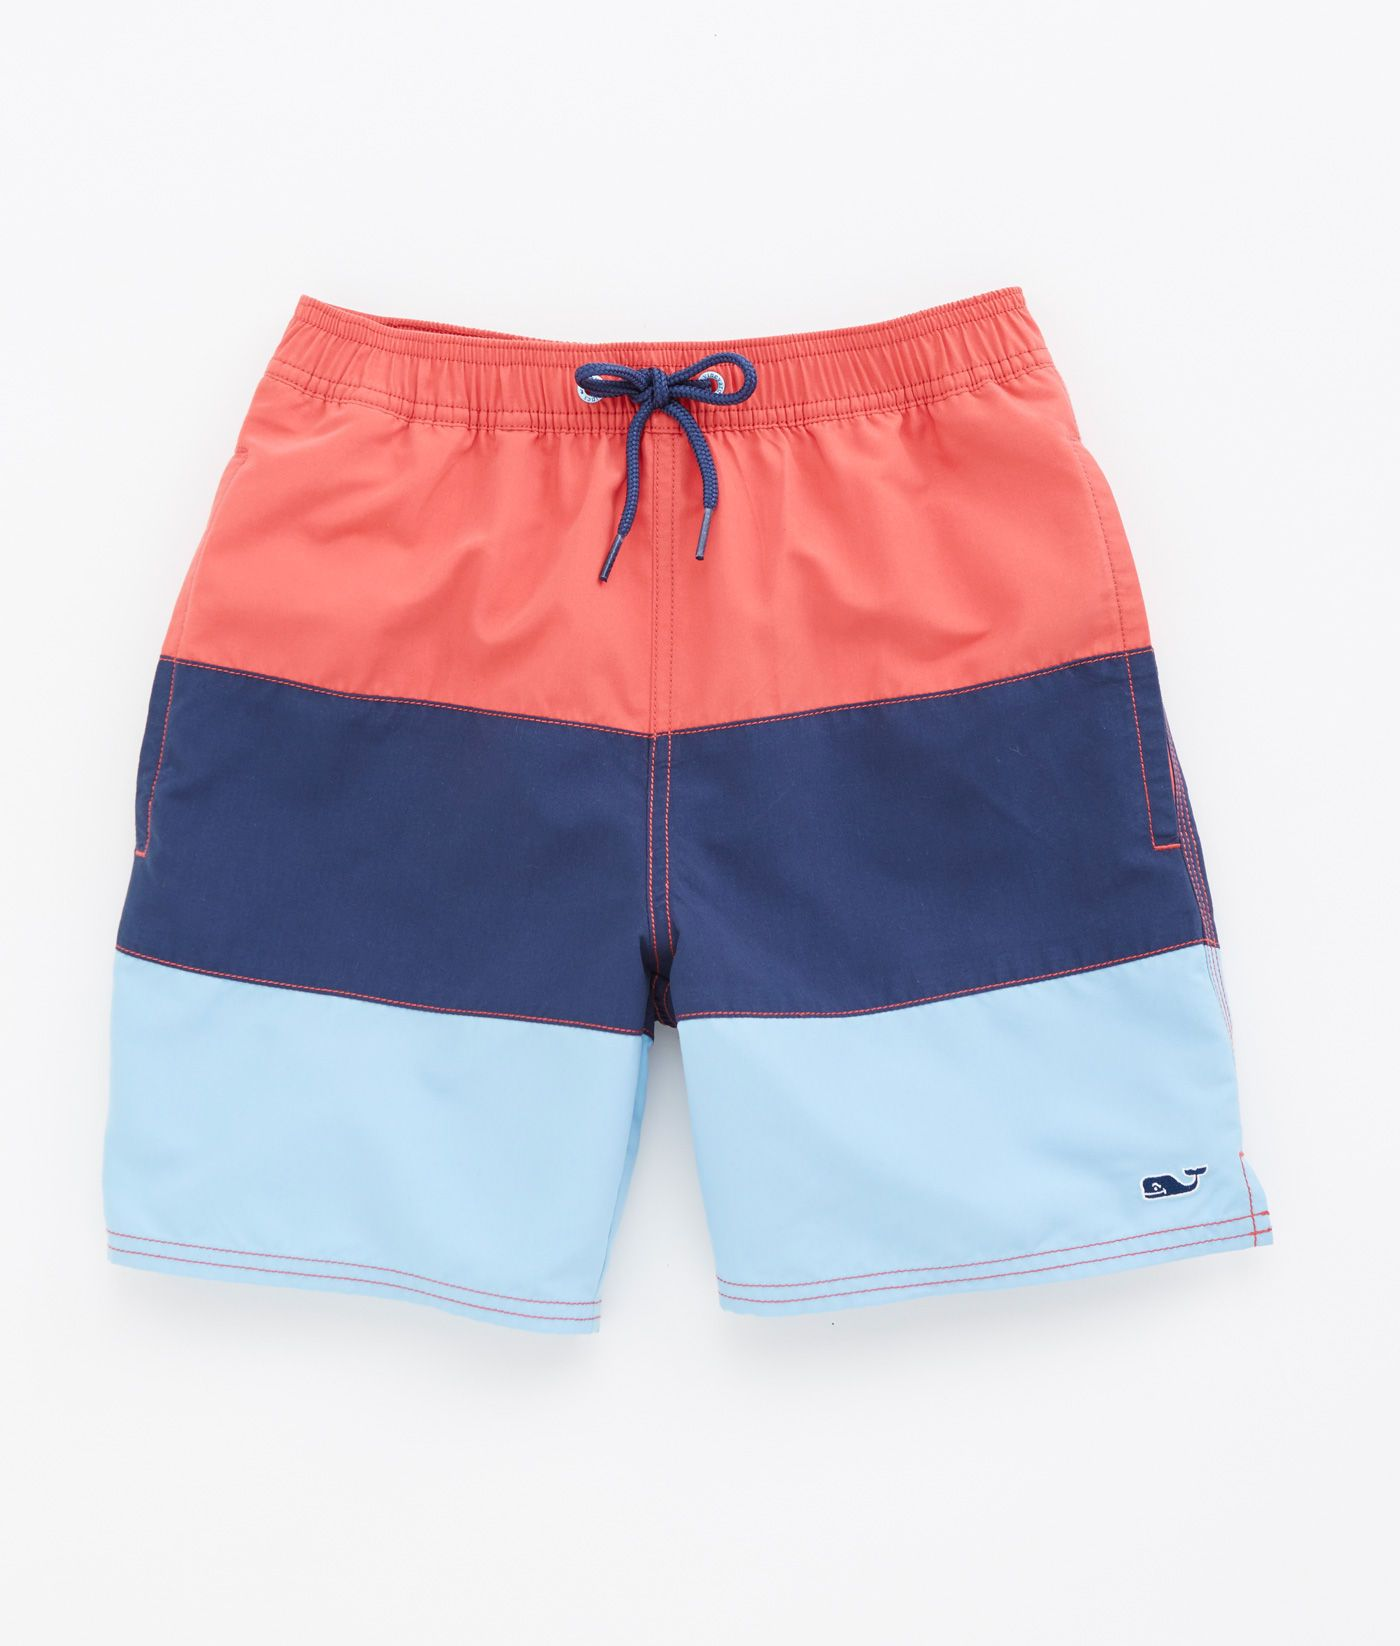 Boys Swim Pieced Bungalow Shorts For Boys Vineyard